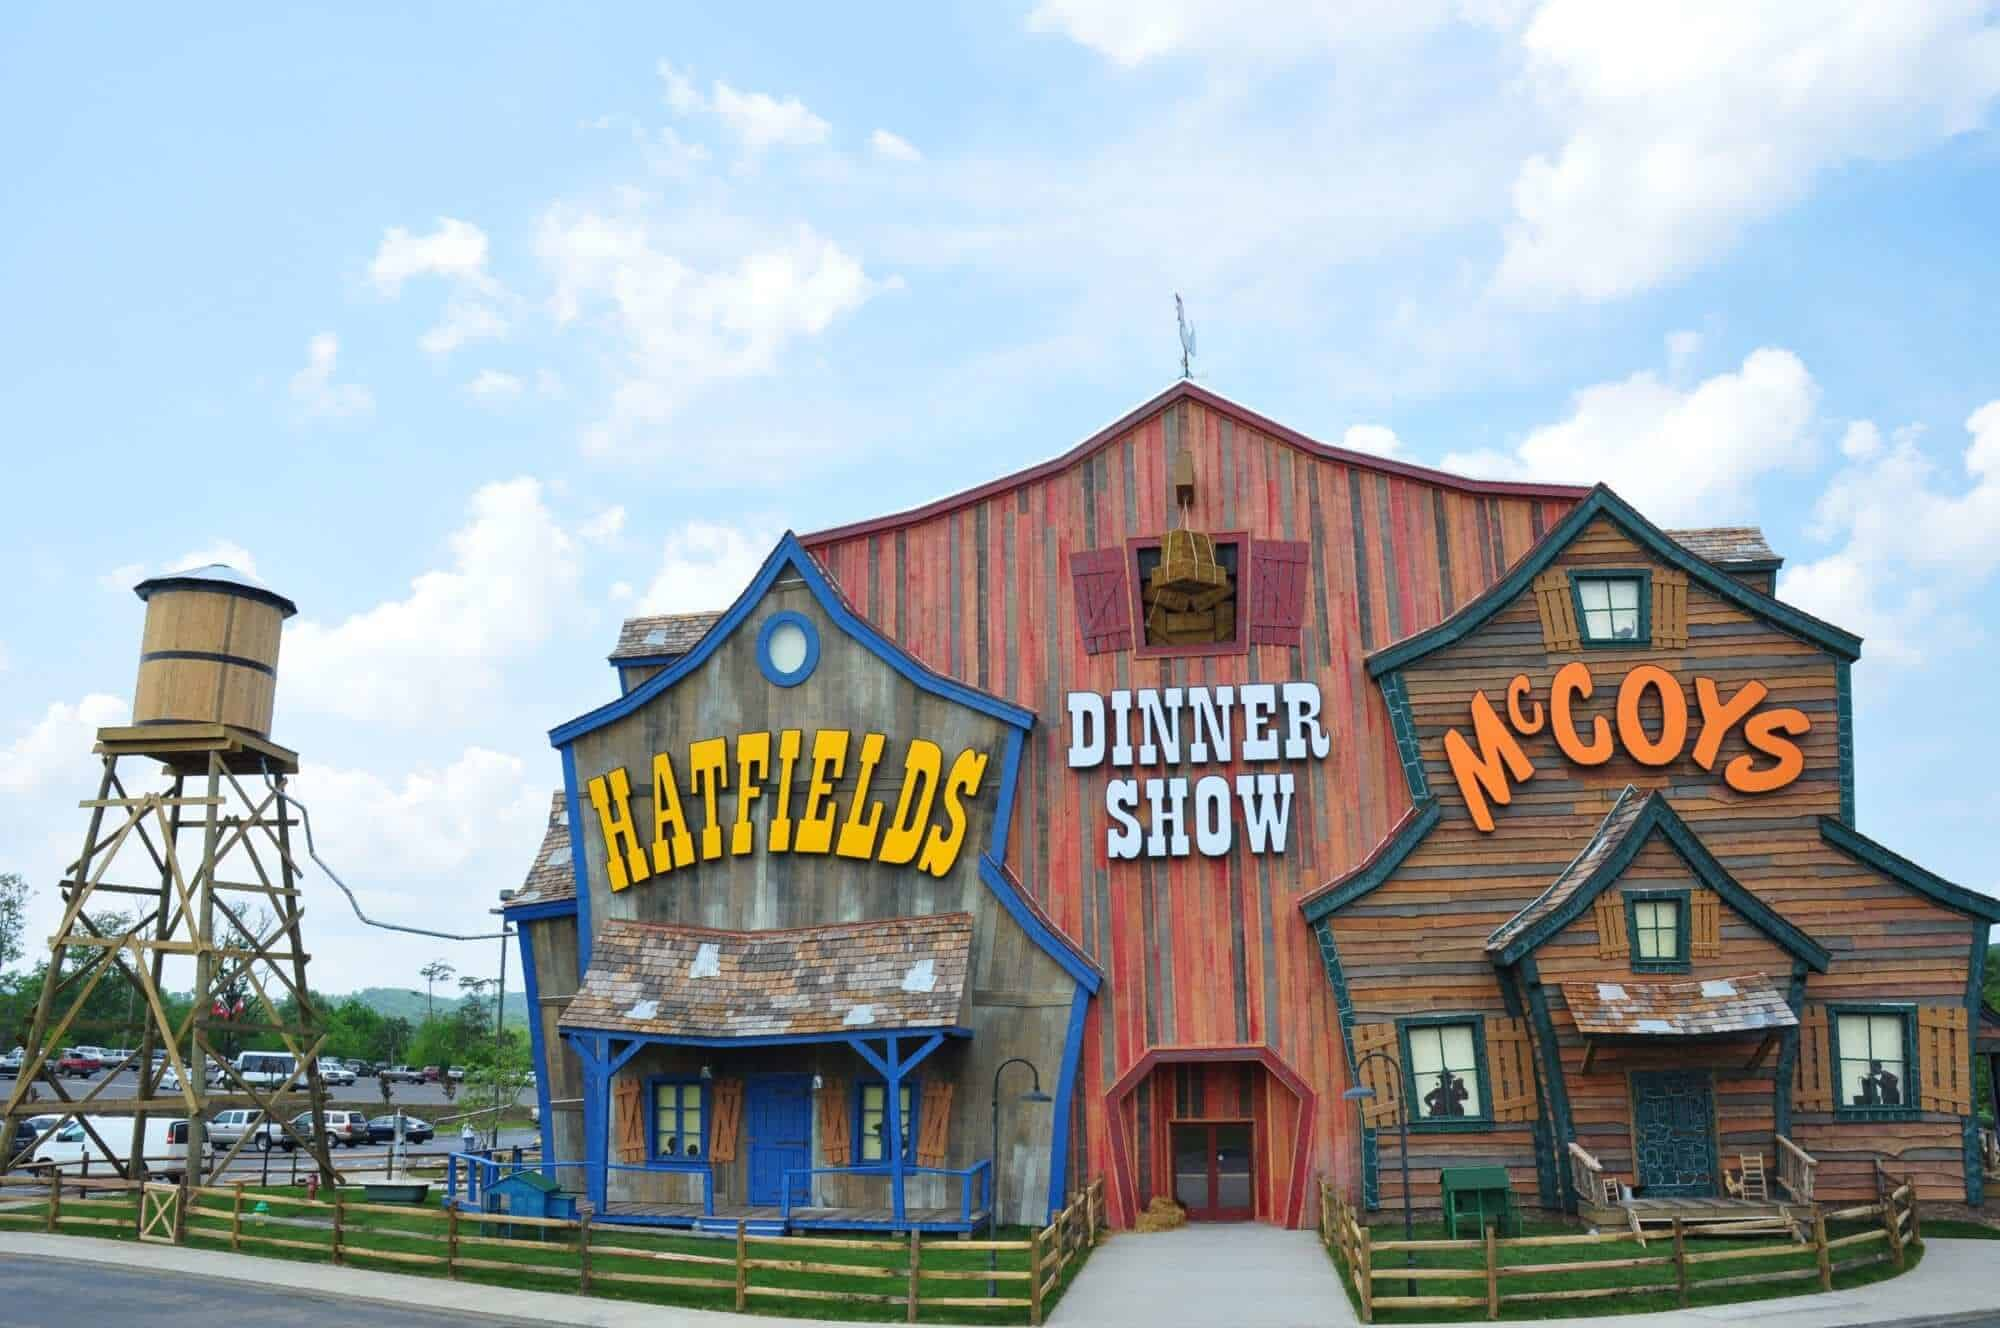 Top 3 Dinner Shows in Pigeon Forge You Have to See When You Visit